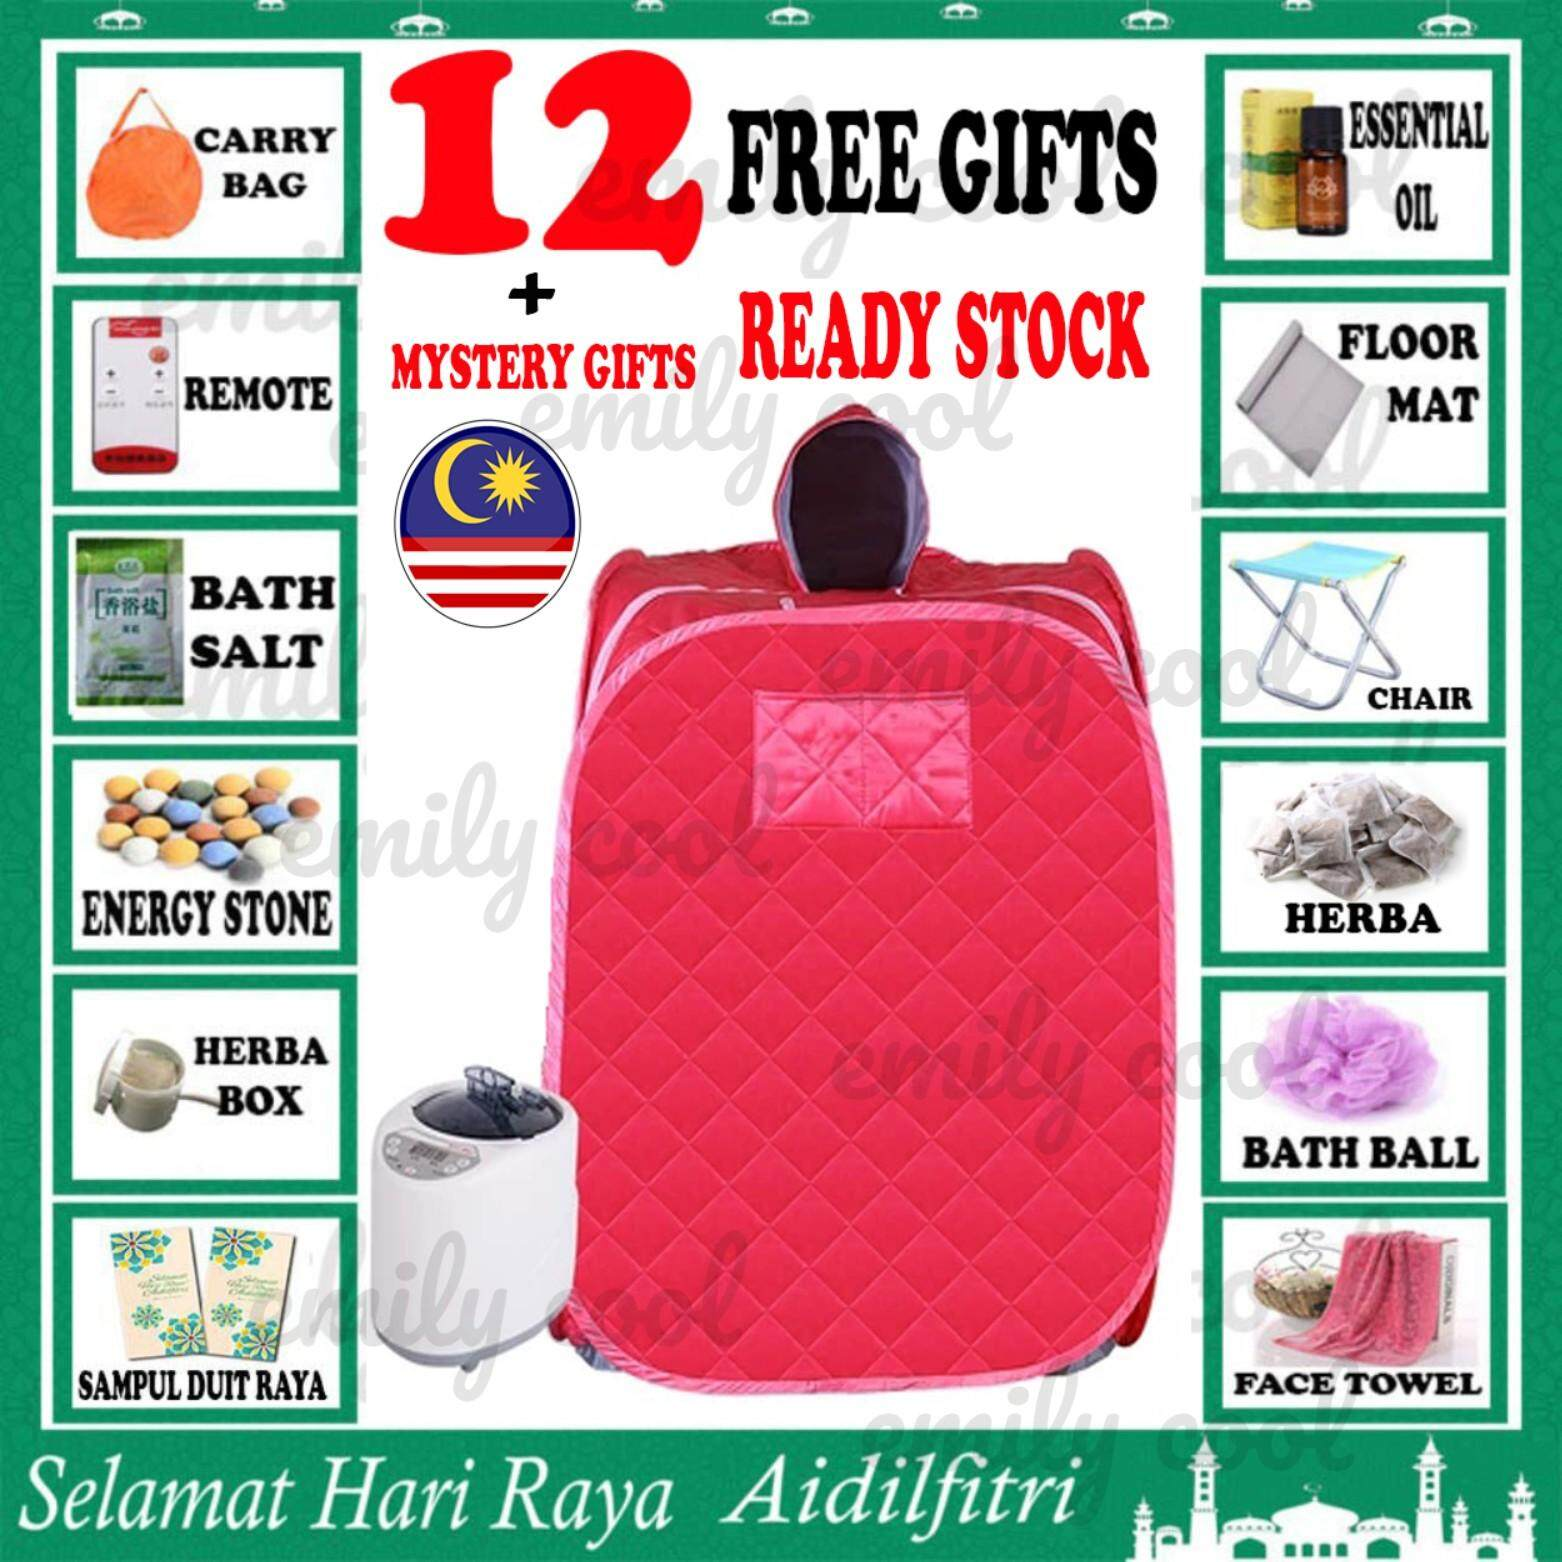 [msia] Ready Stock Rose Red Color Portable Steam Sauna Foldable Tent Personal Skin Beauty Health Slimming Rose Red Color By Emily Cool Gallery.